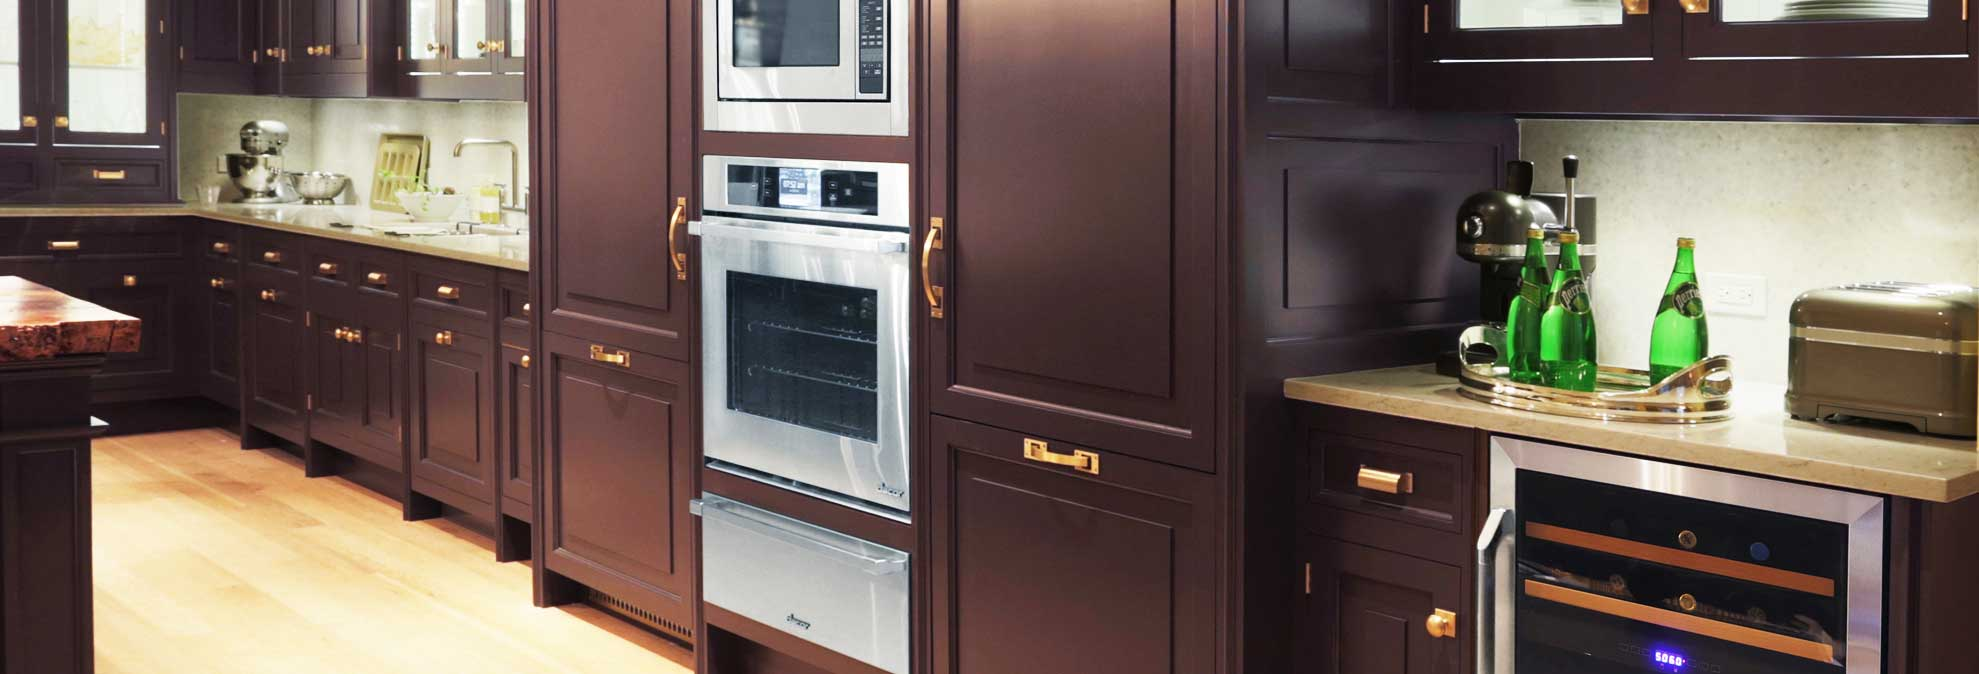 amazing Mid Level Kitchen Cabinets #5: Consumer Reports